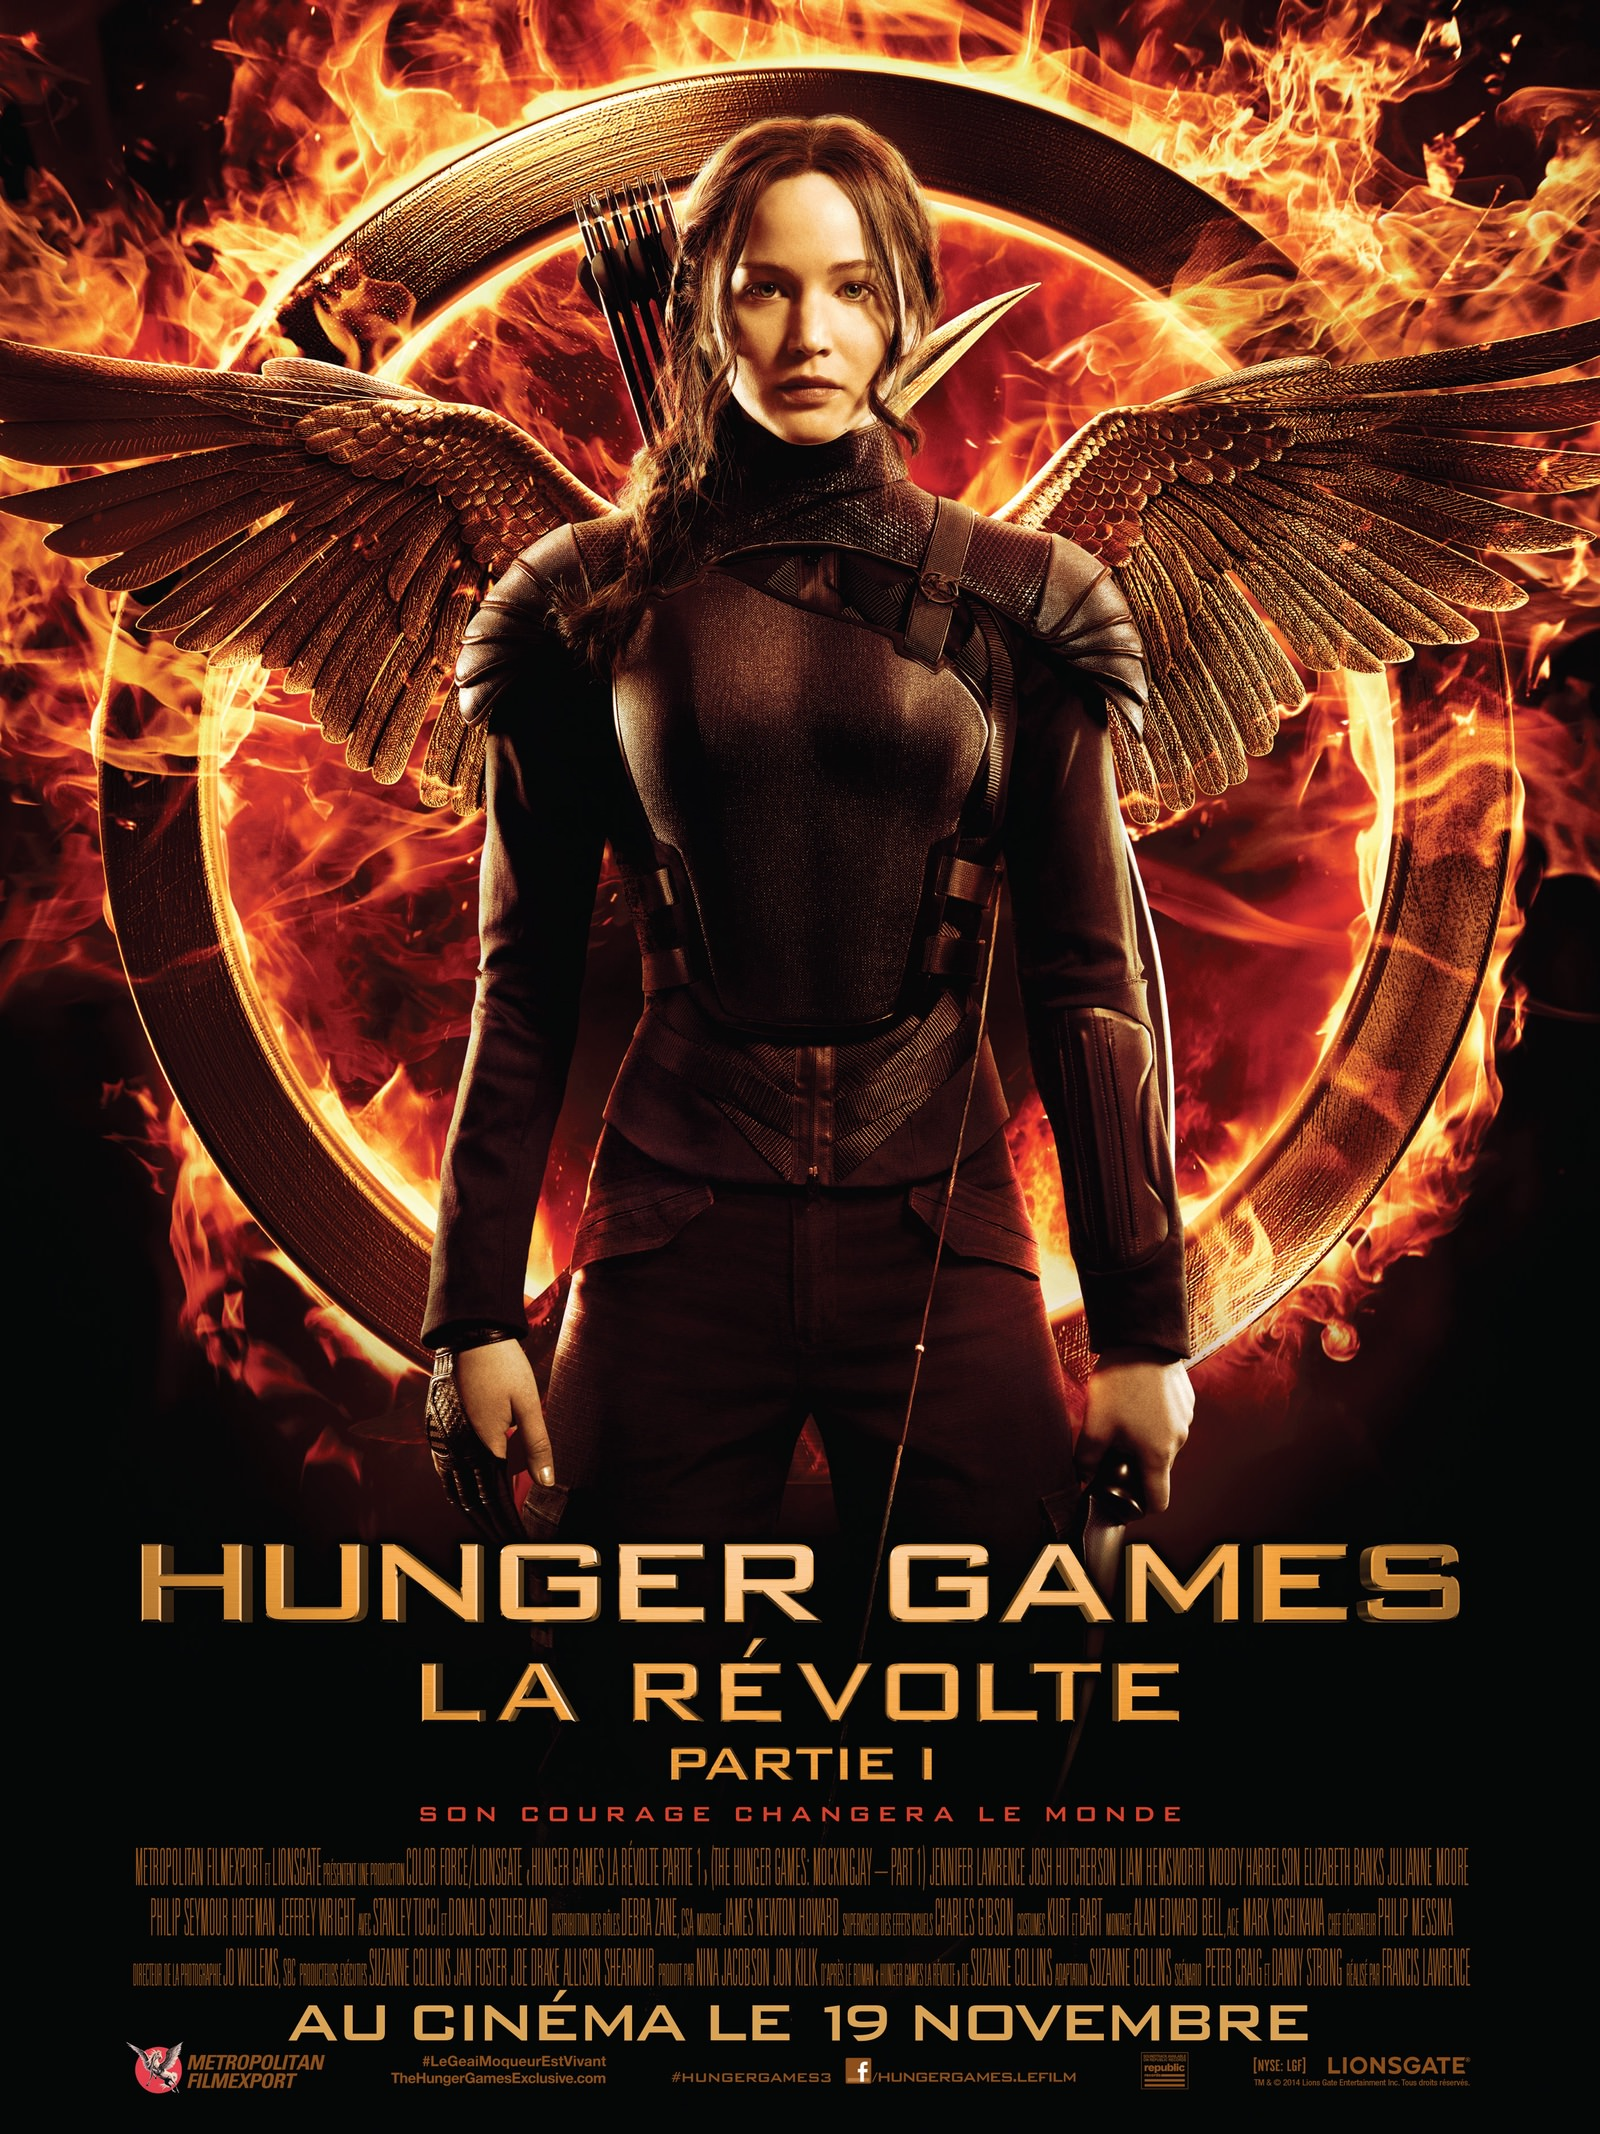 Hunger games revolte partie 1 lawrence